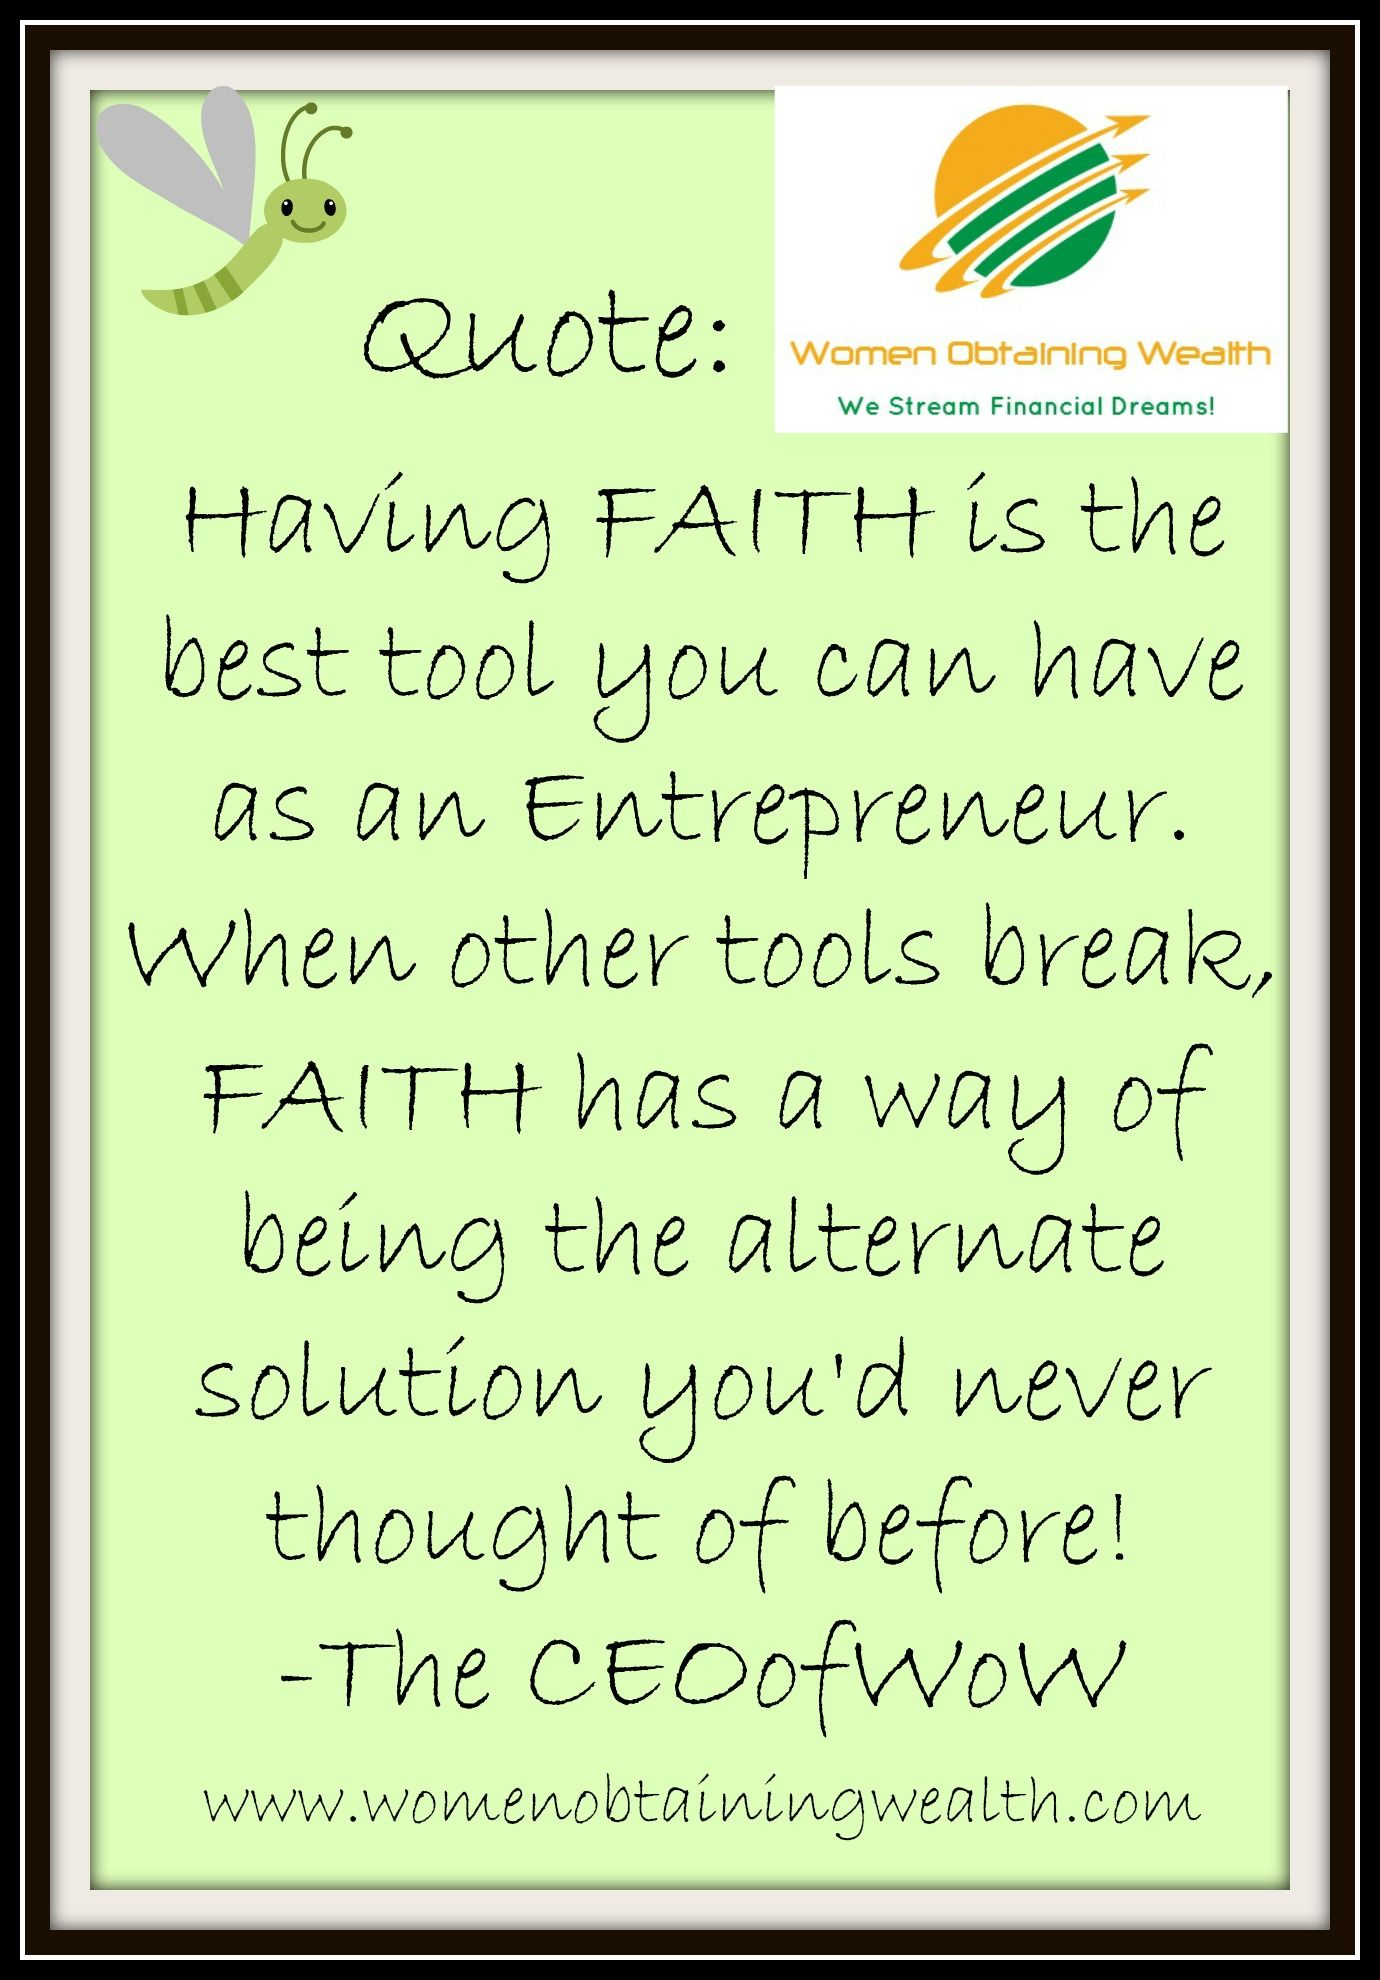 FAITH is such a useful tool as an Entrepreneur. You gotta have it!